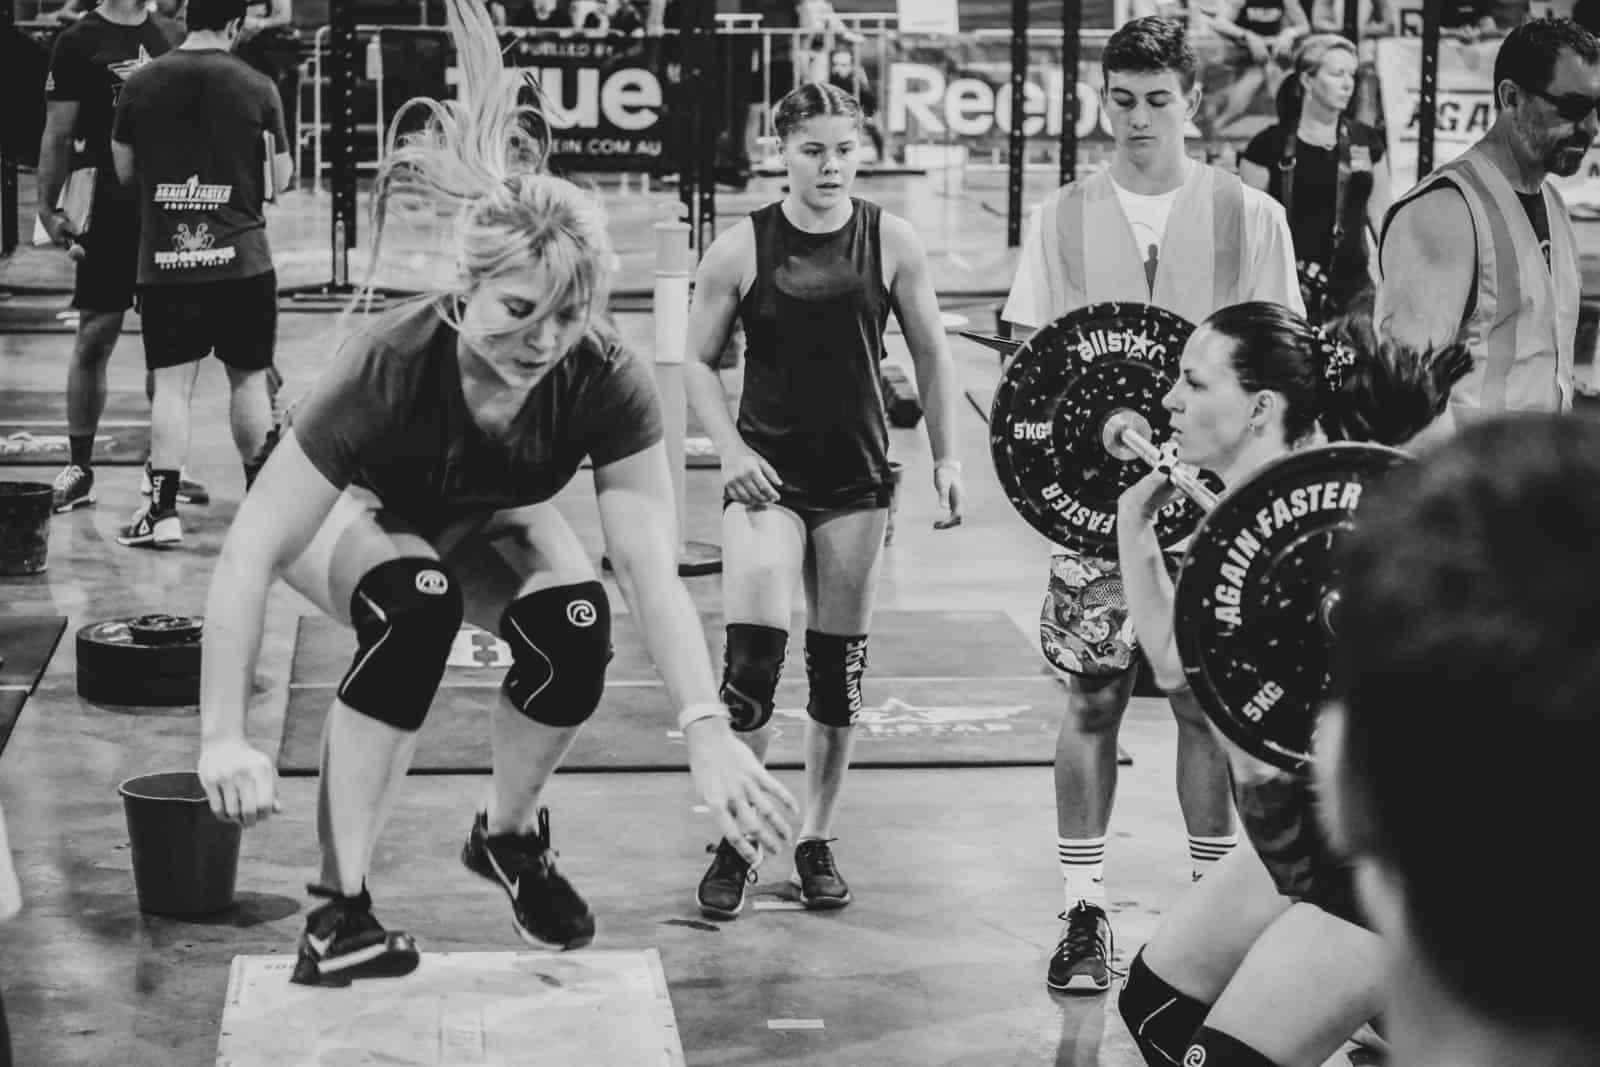 crossfit competition All Stars